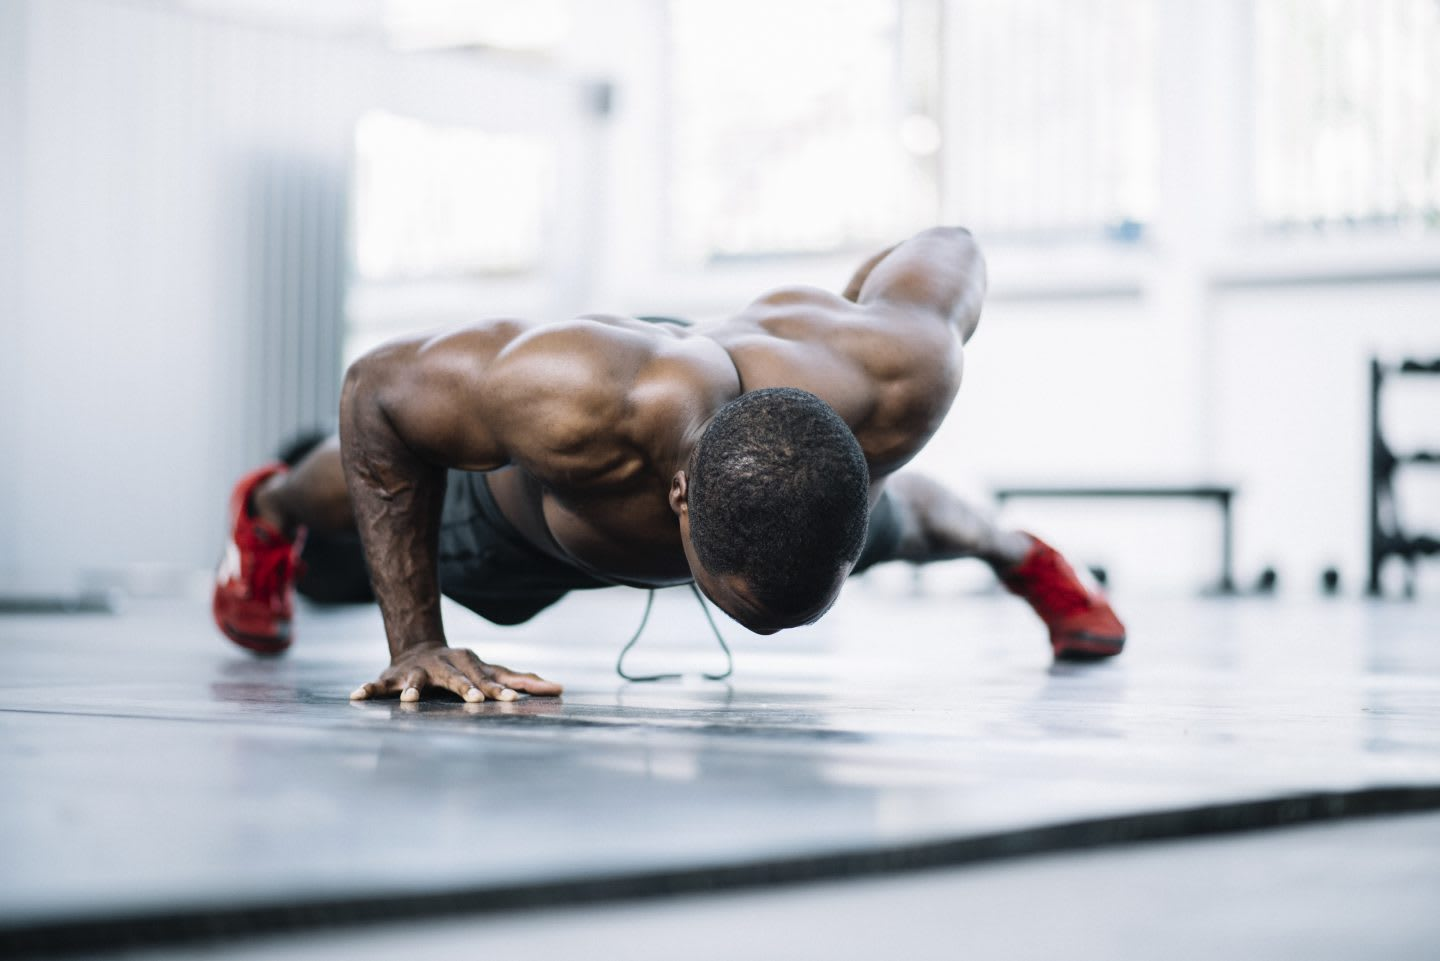 A shirtless man in a gym is doing a one armed push-up.